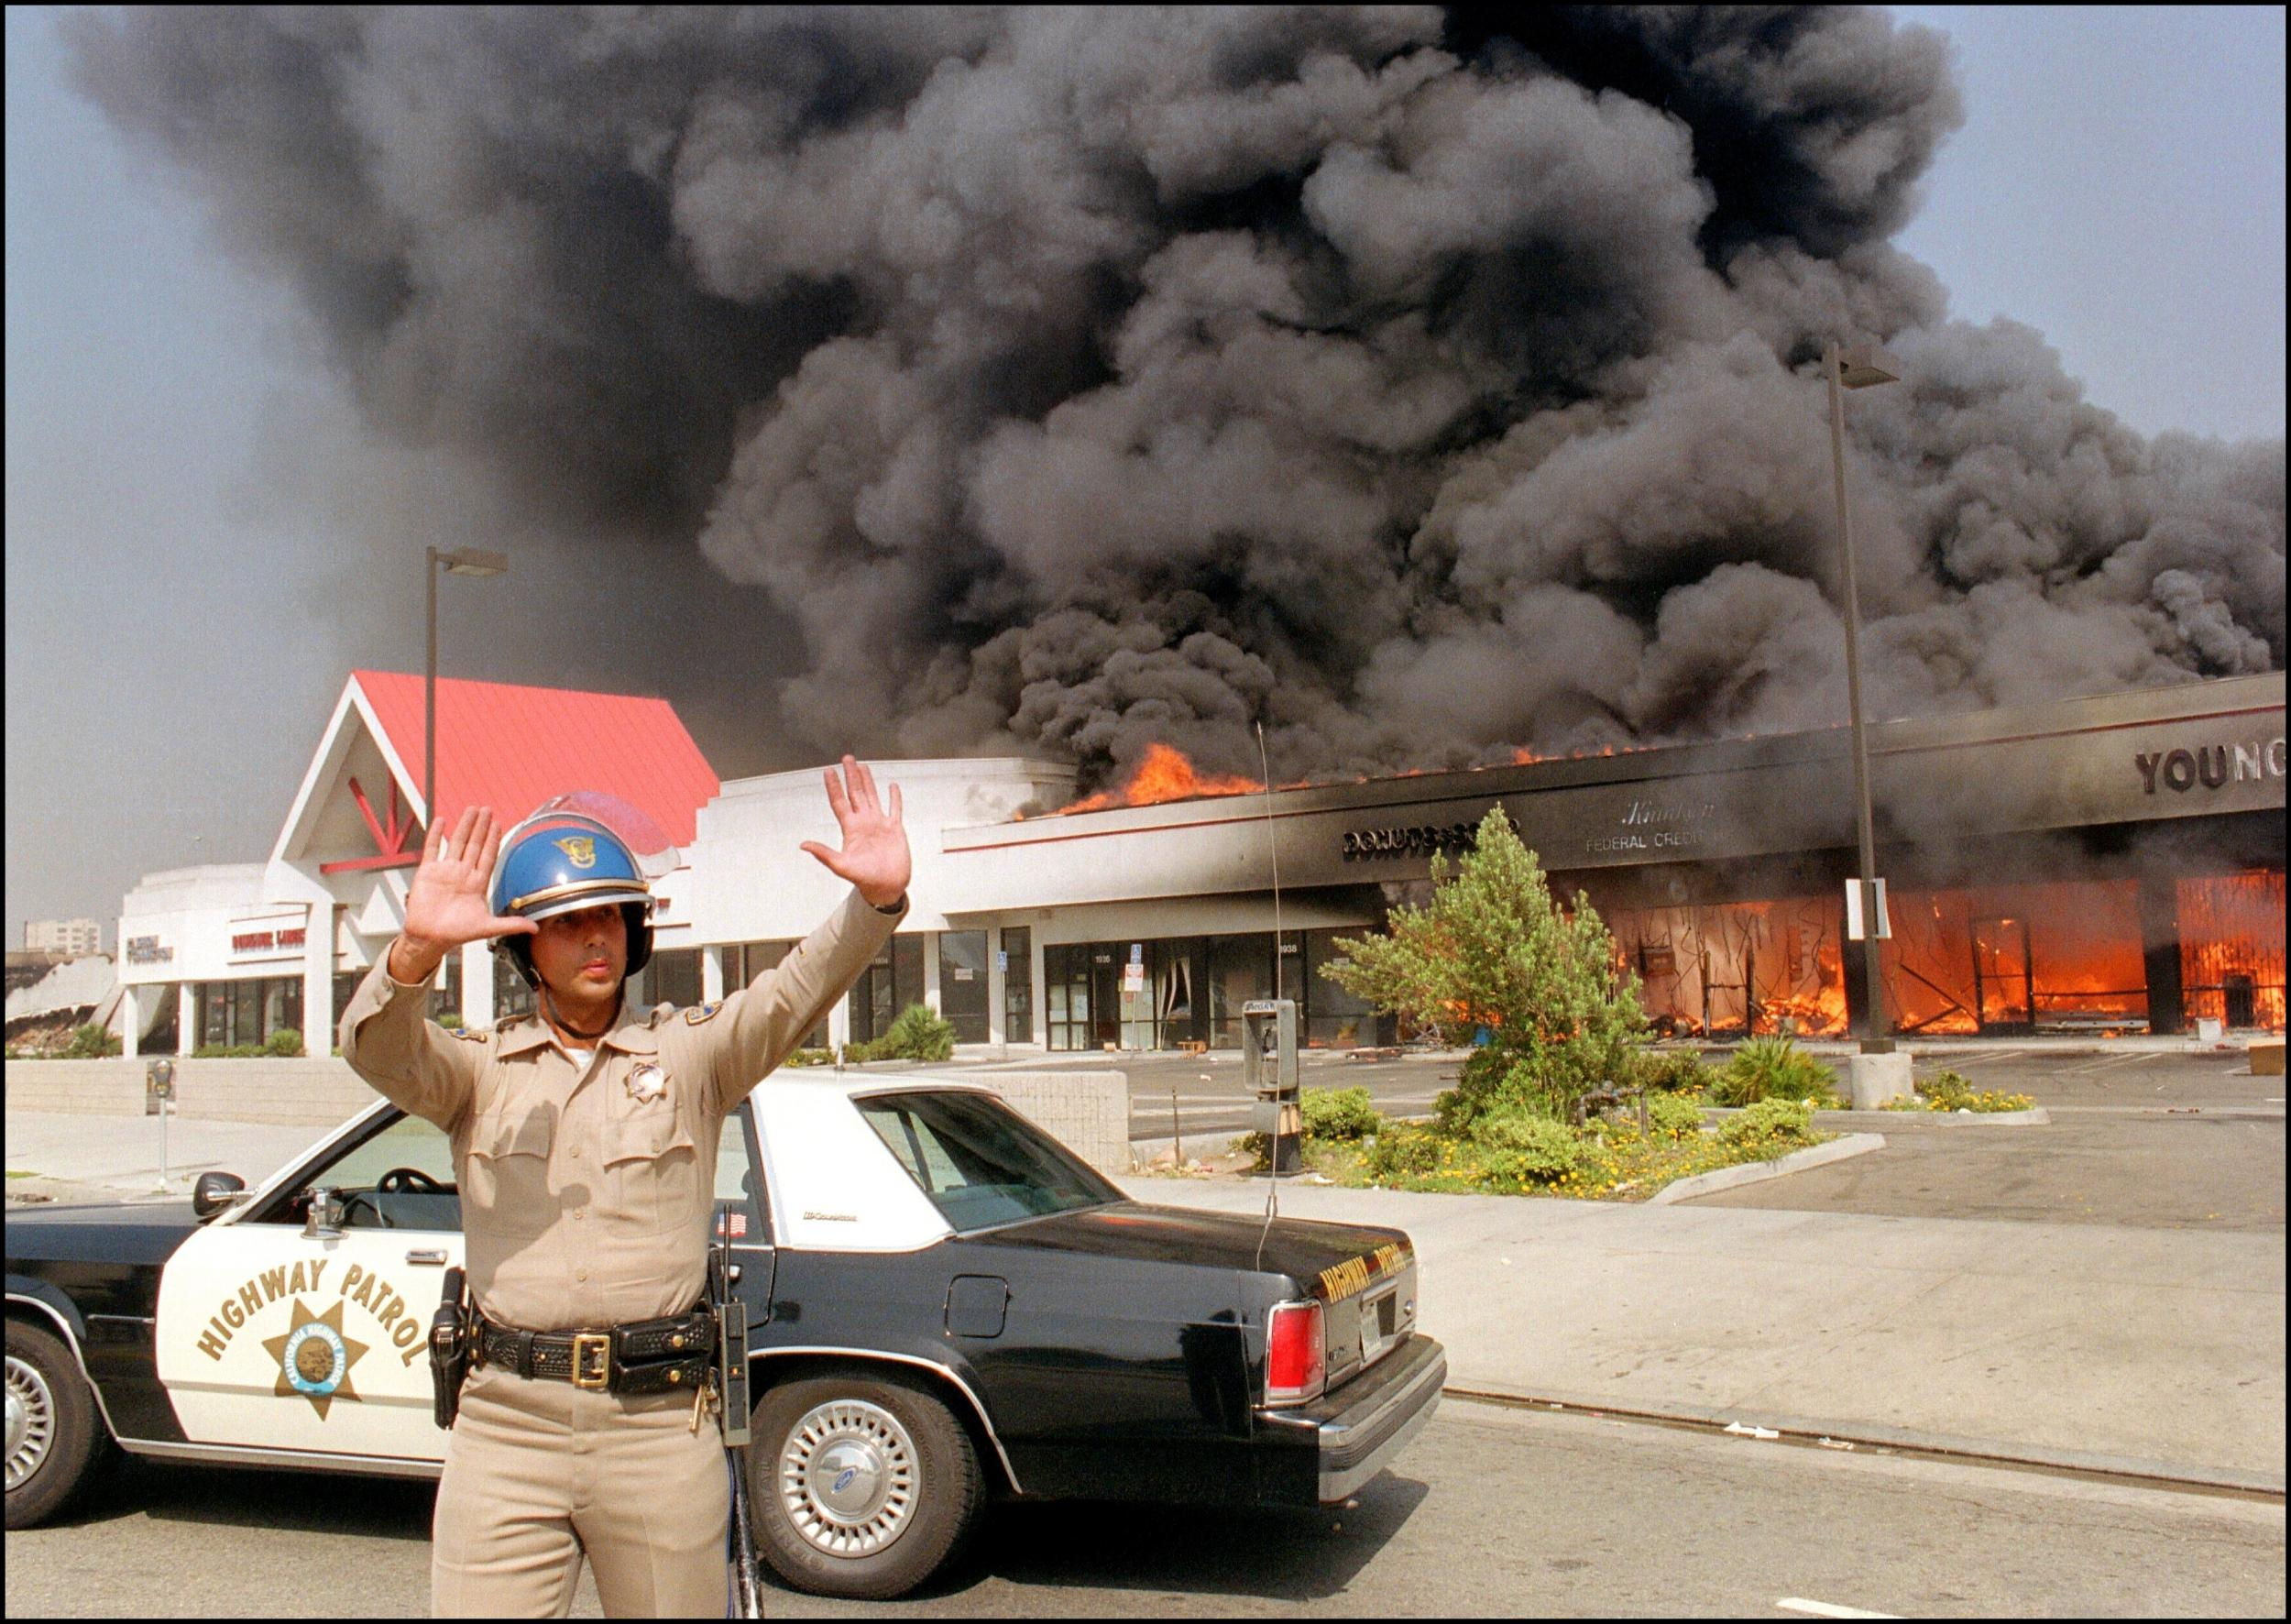 LA riots: How The Independent covered the events on this day in history photo